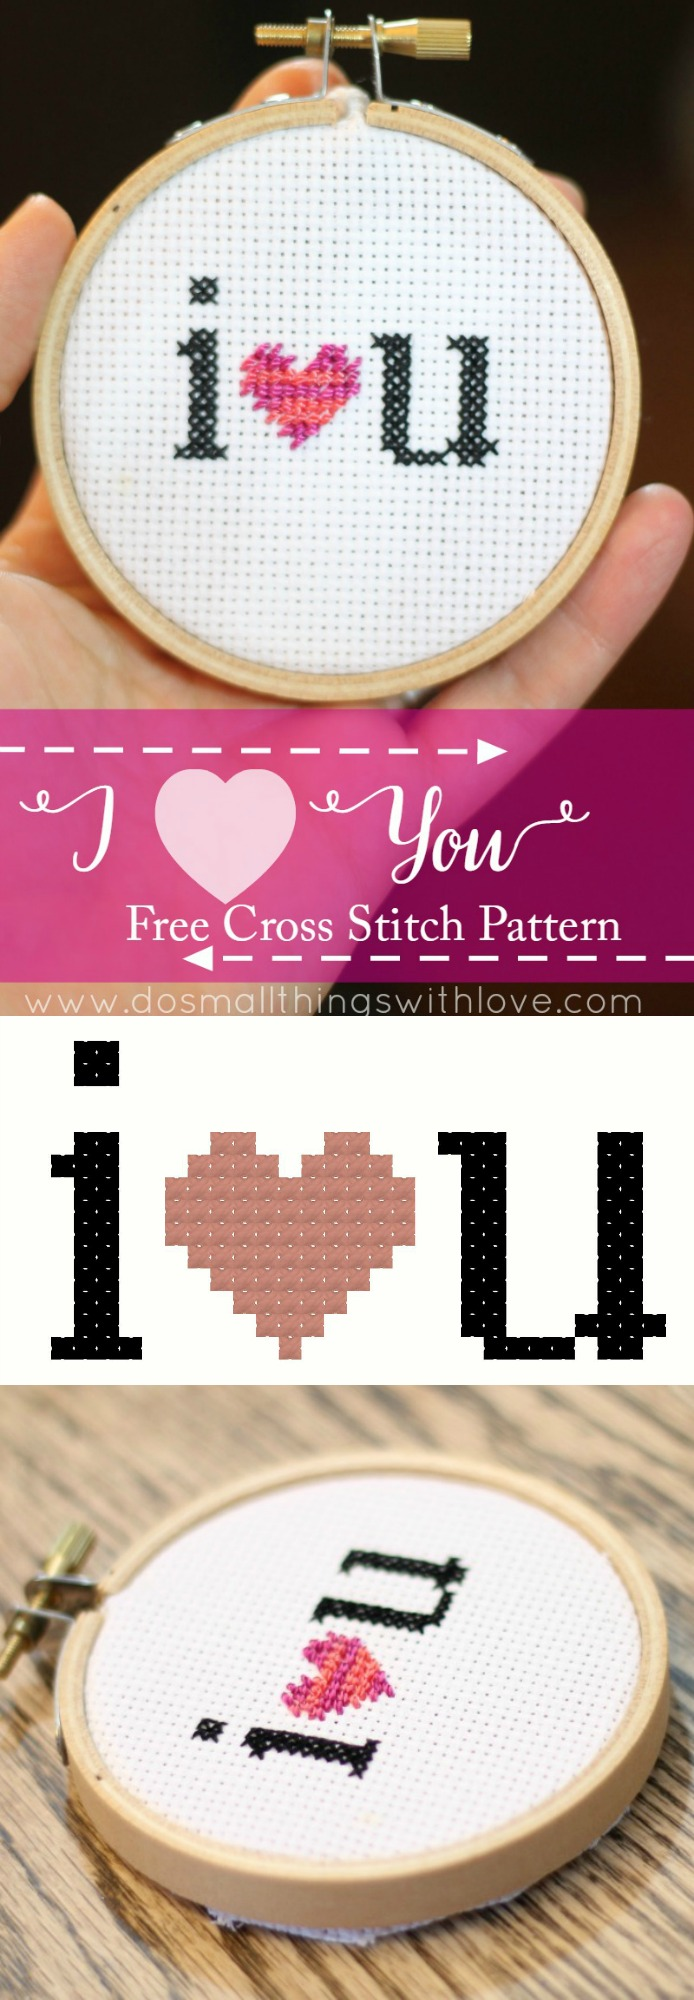 I heart you free cross stitch pattern for Valentines Day!